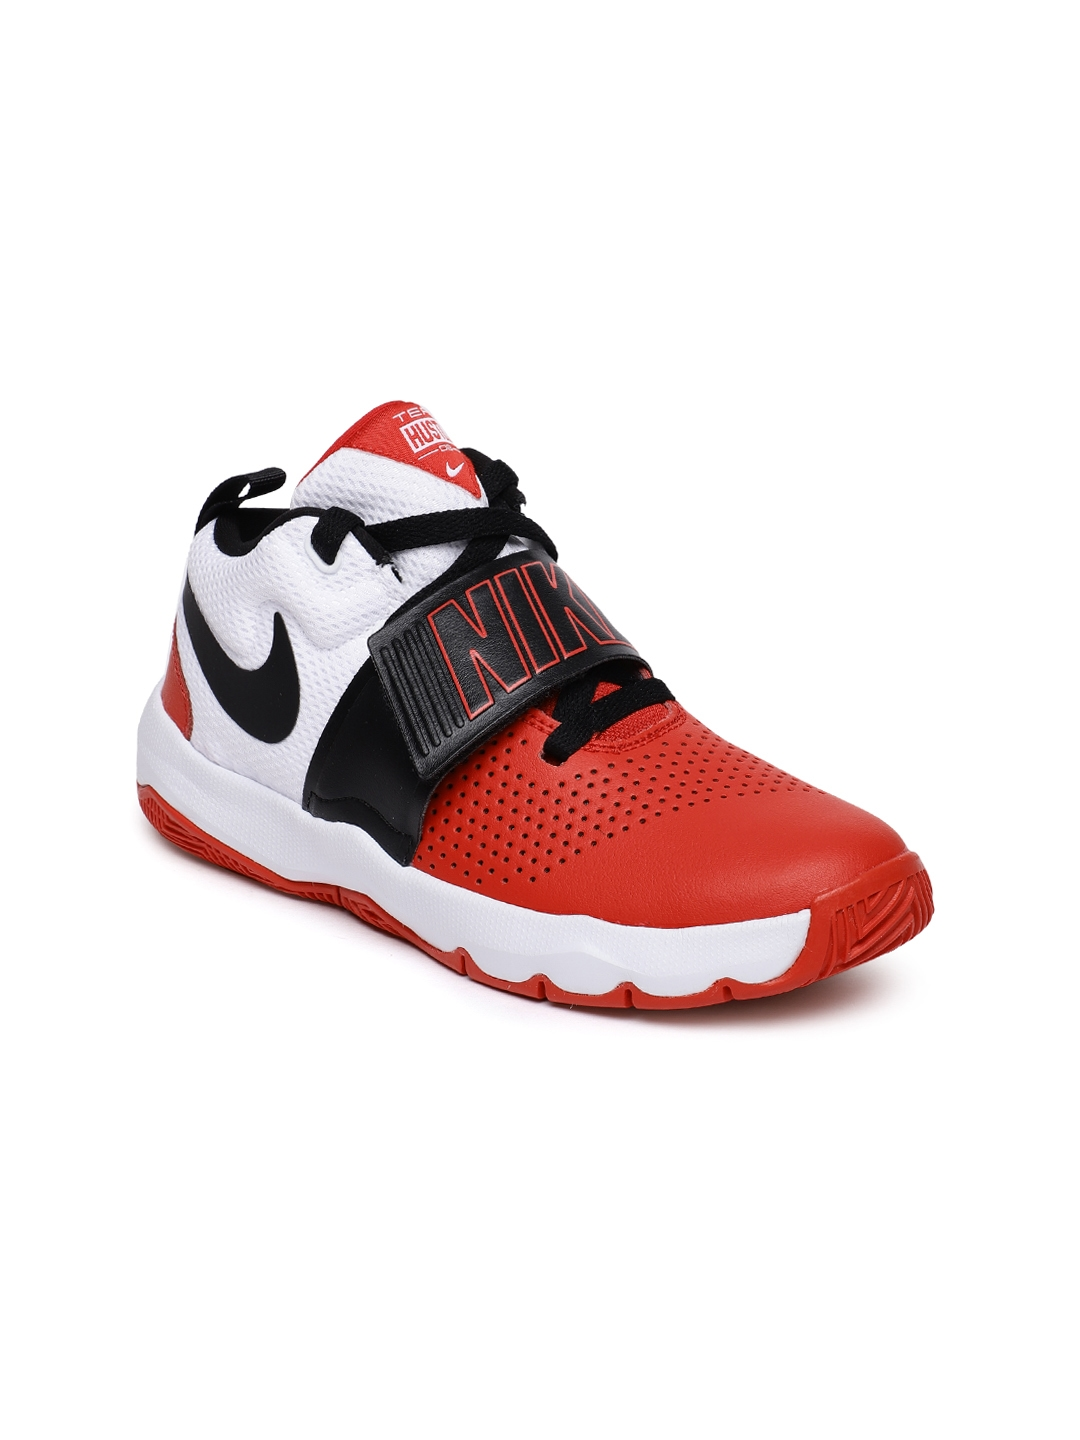 45f66a35445b Buy Nike Boys Red   White Team Hustle D 8 (GS) Basketball Shoes ...